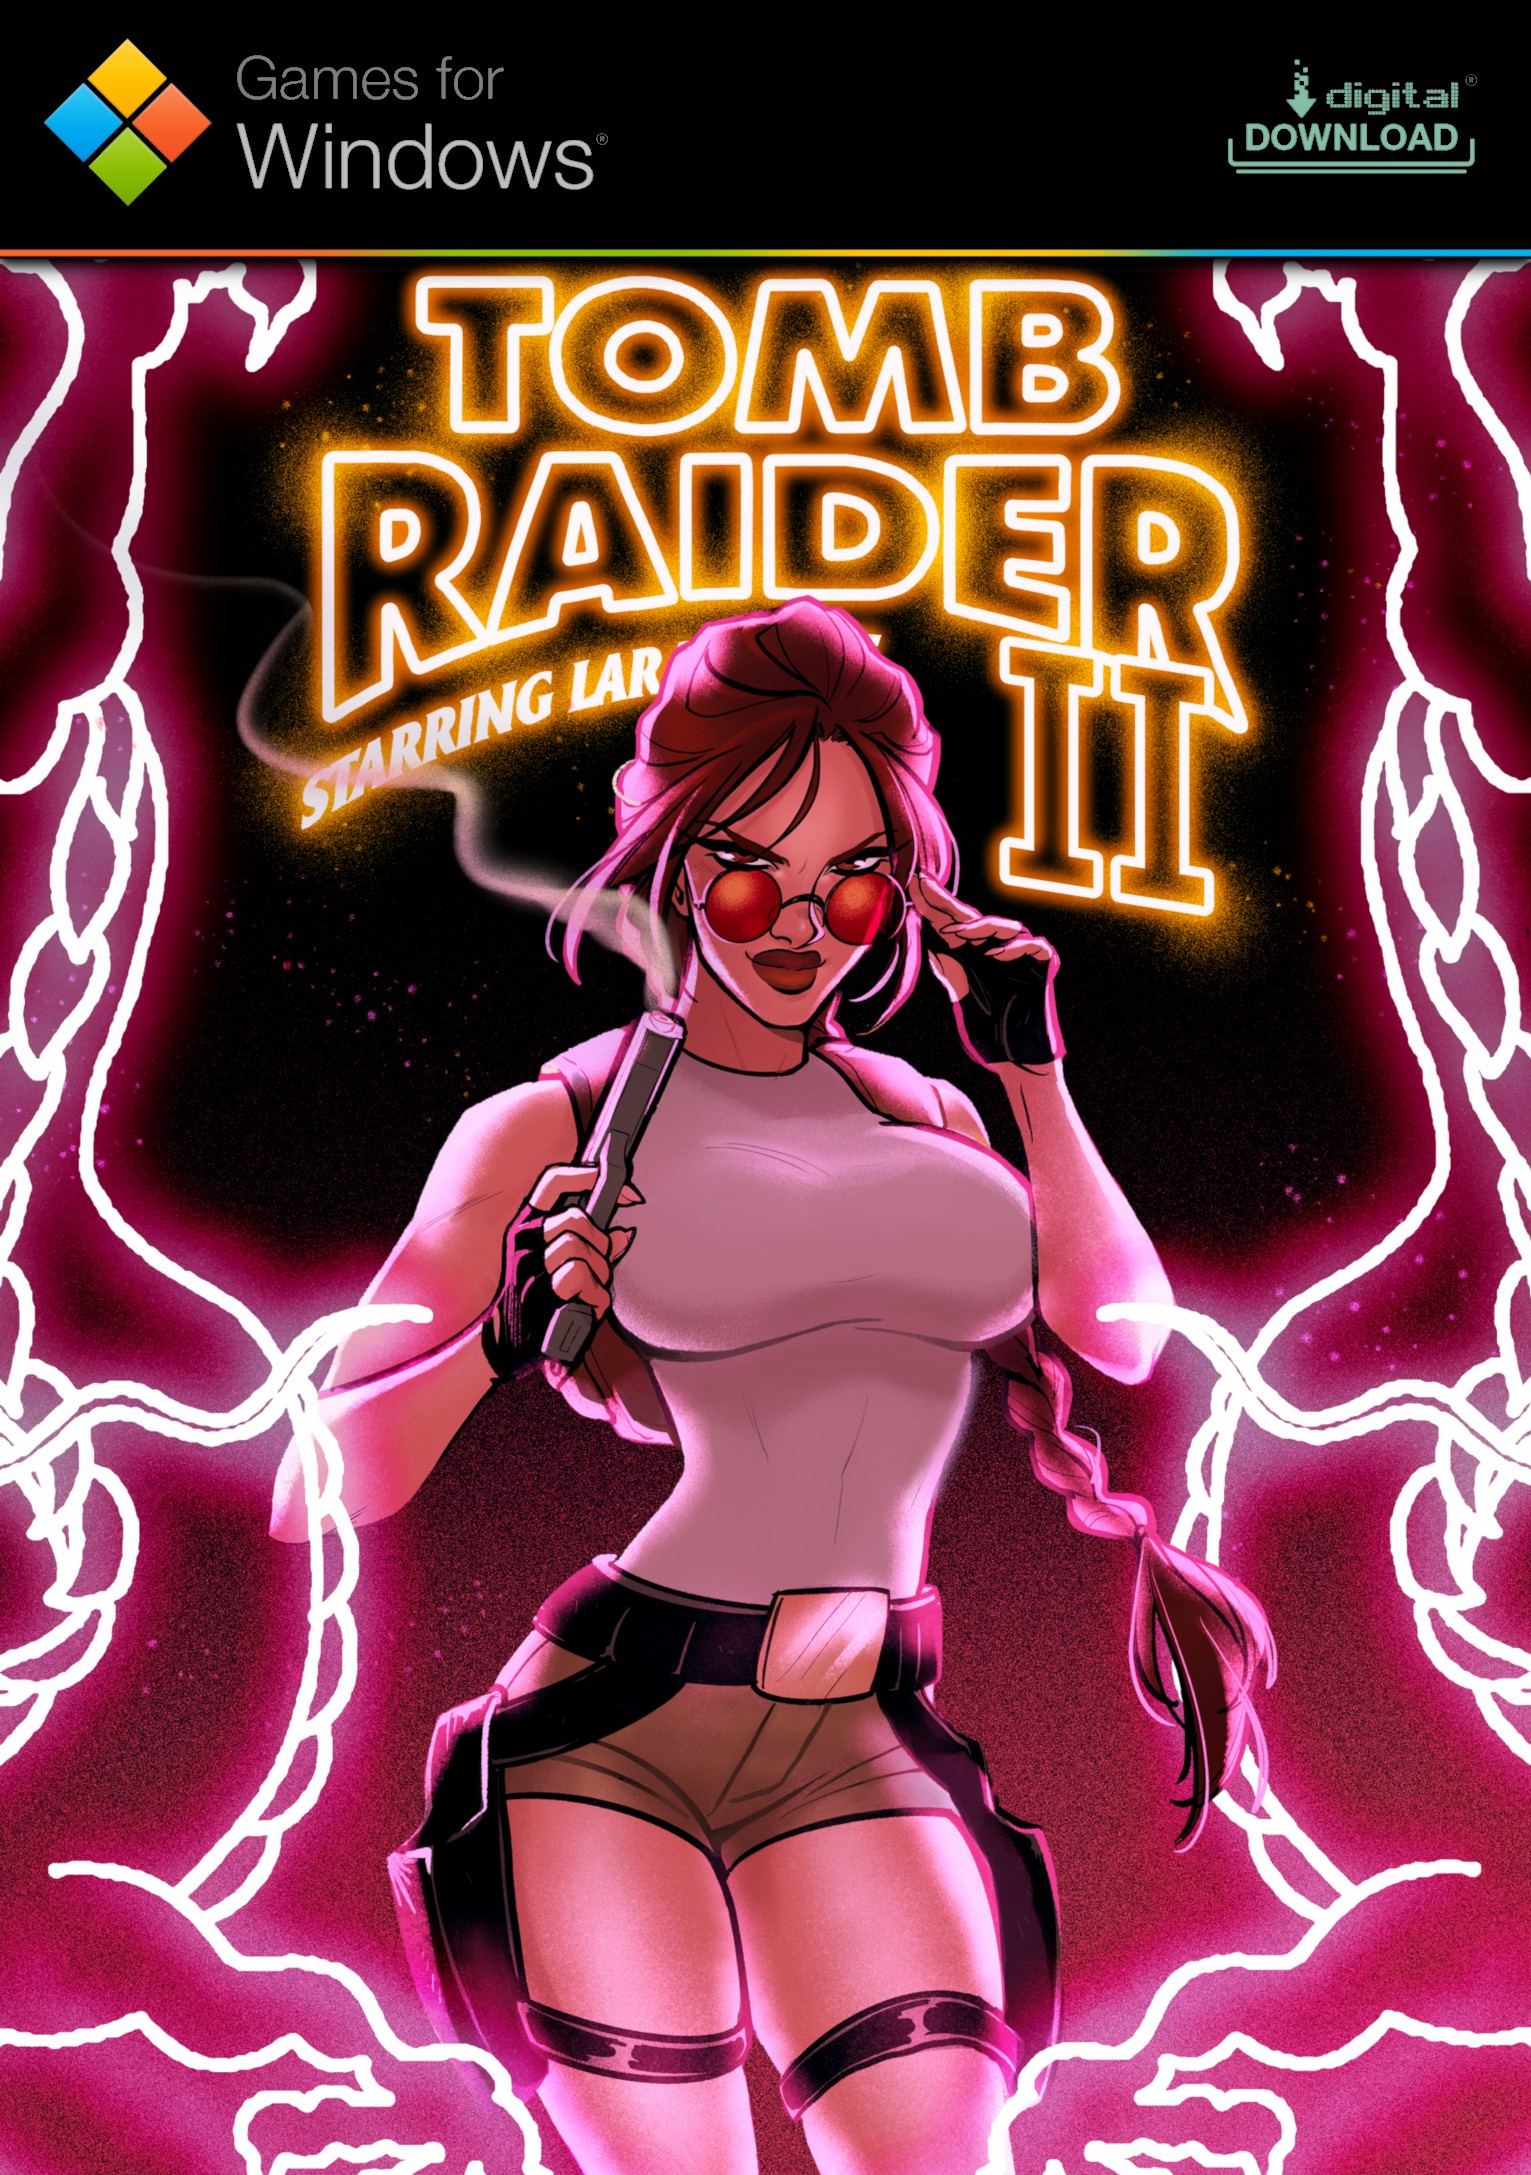 Tom Raider: The Dagger of Xian - Tomb Raider 2 Remake by